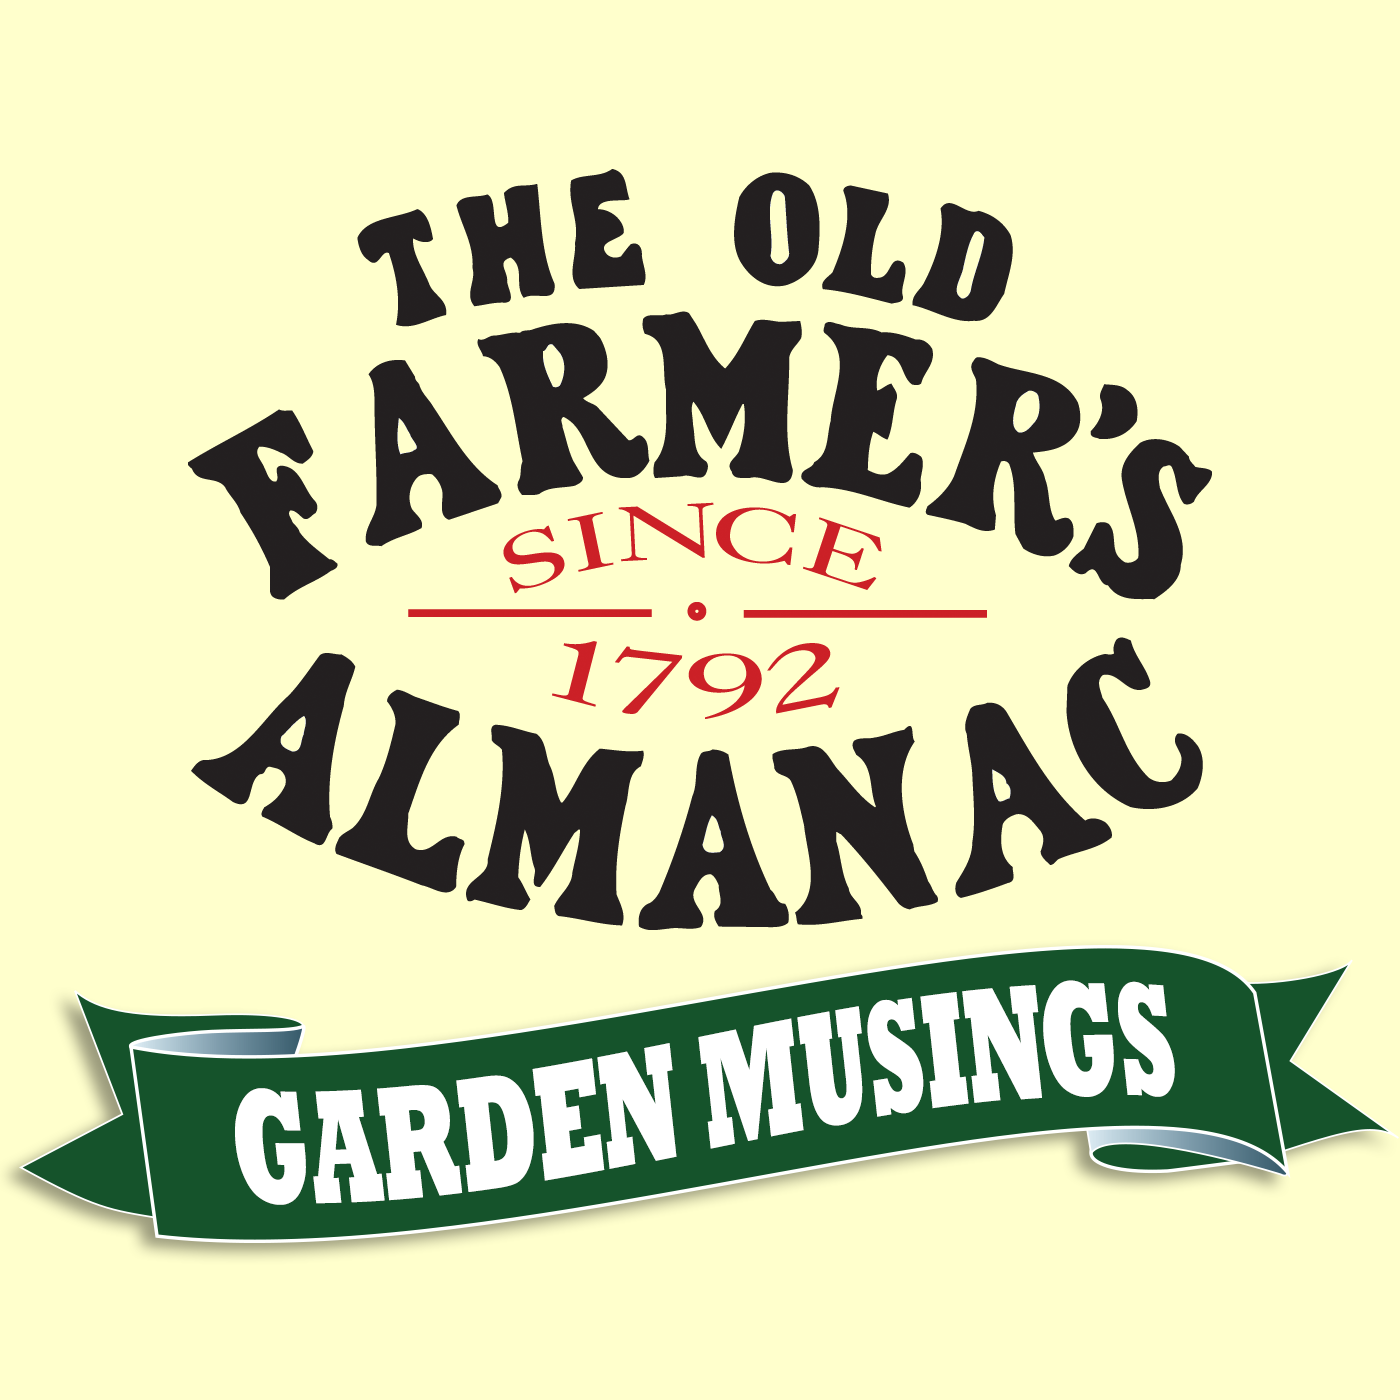 The Old Farmer's Almanac Garden Musings